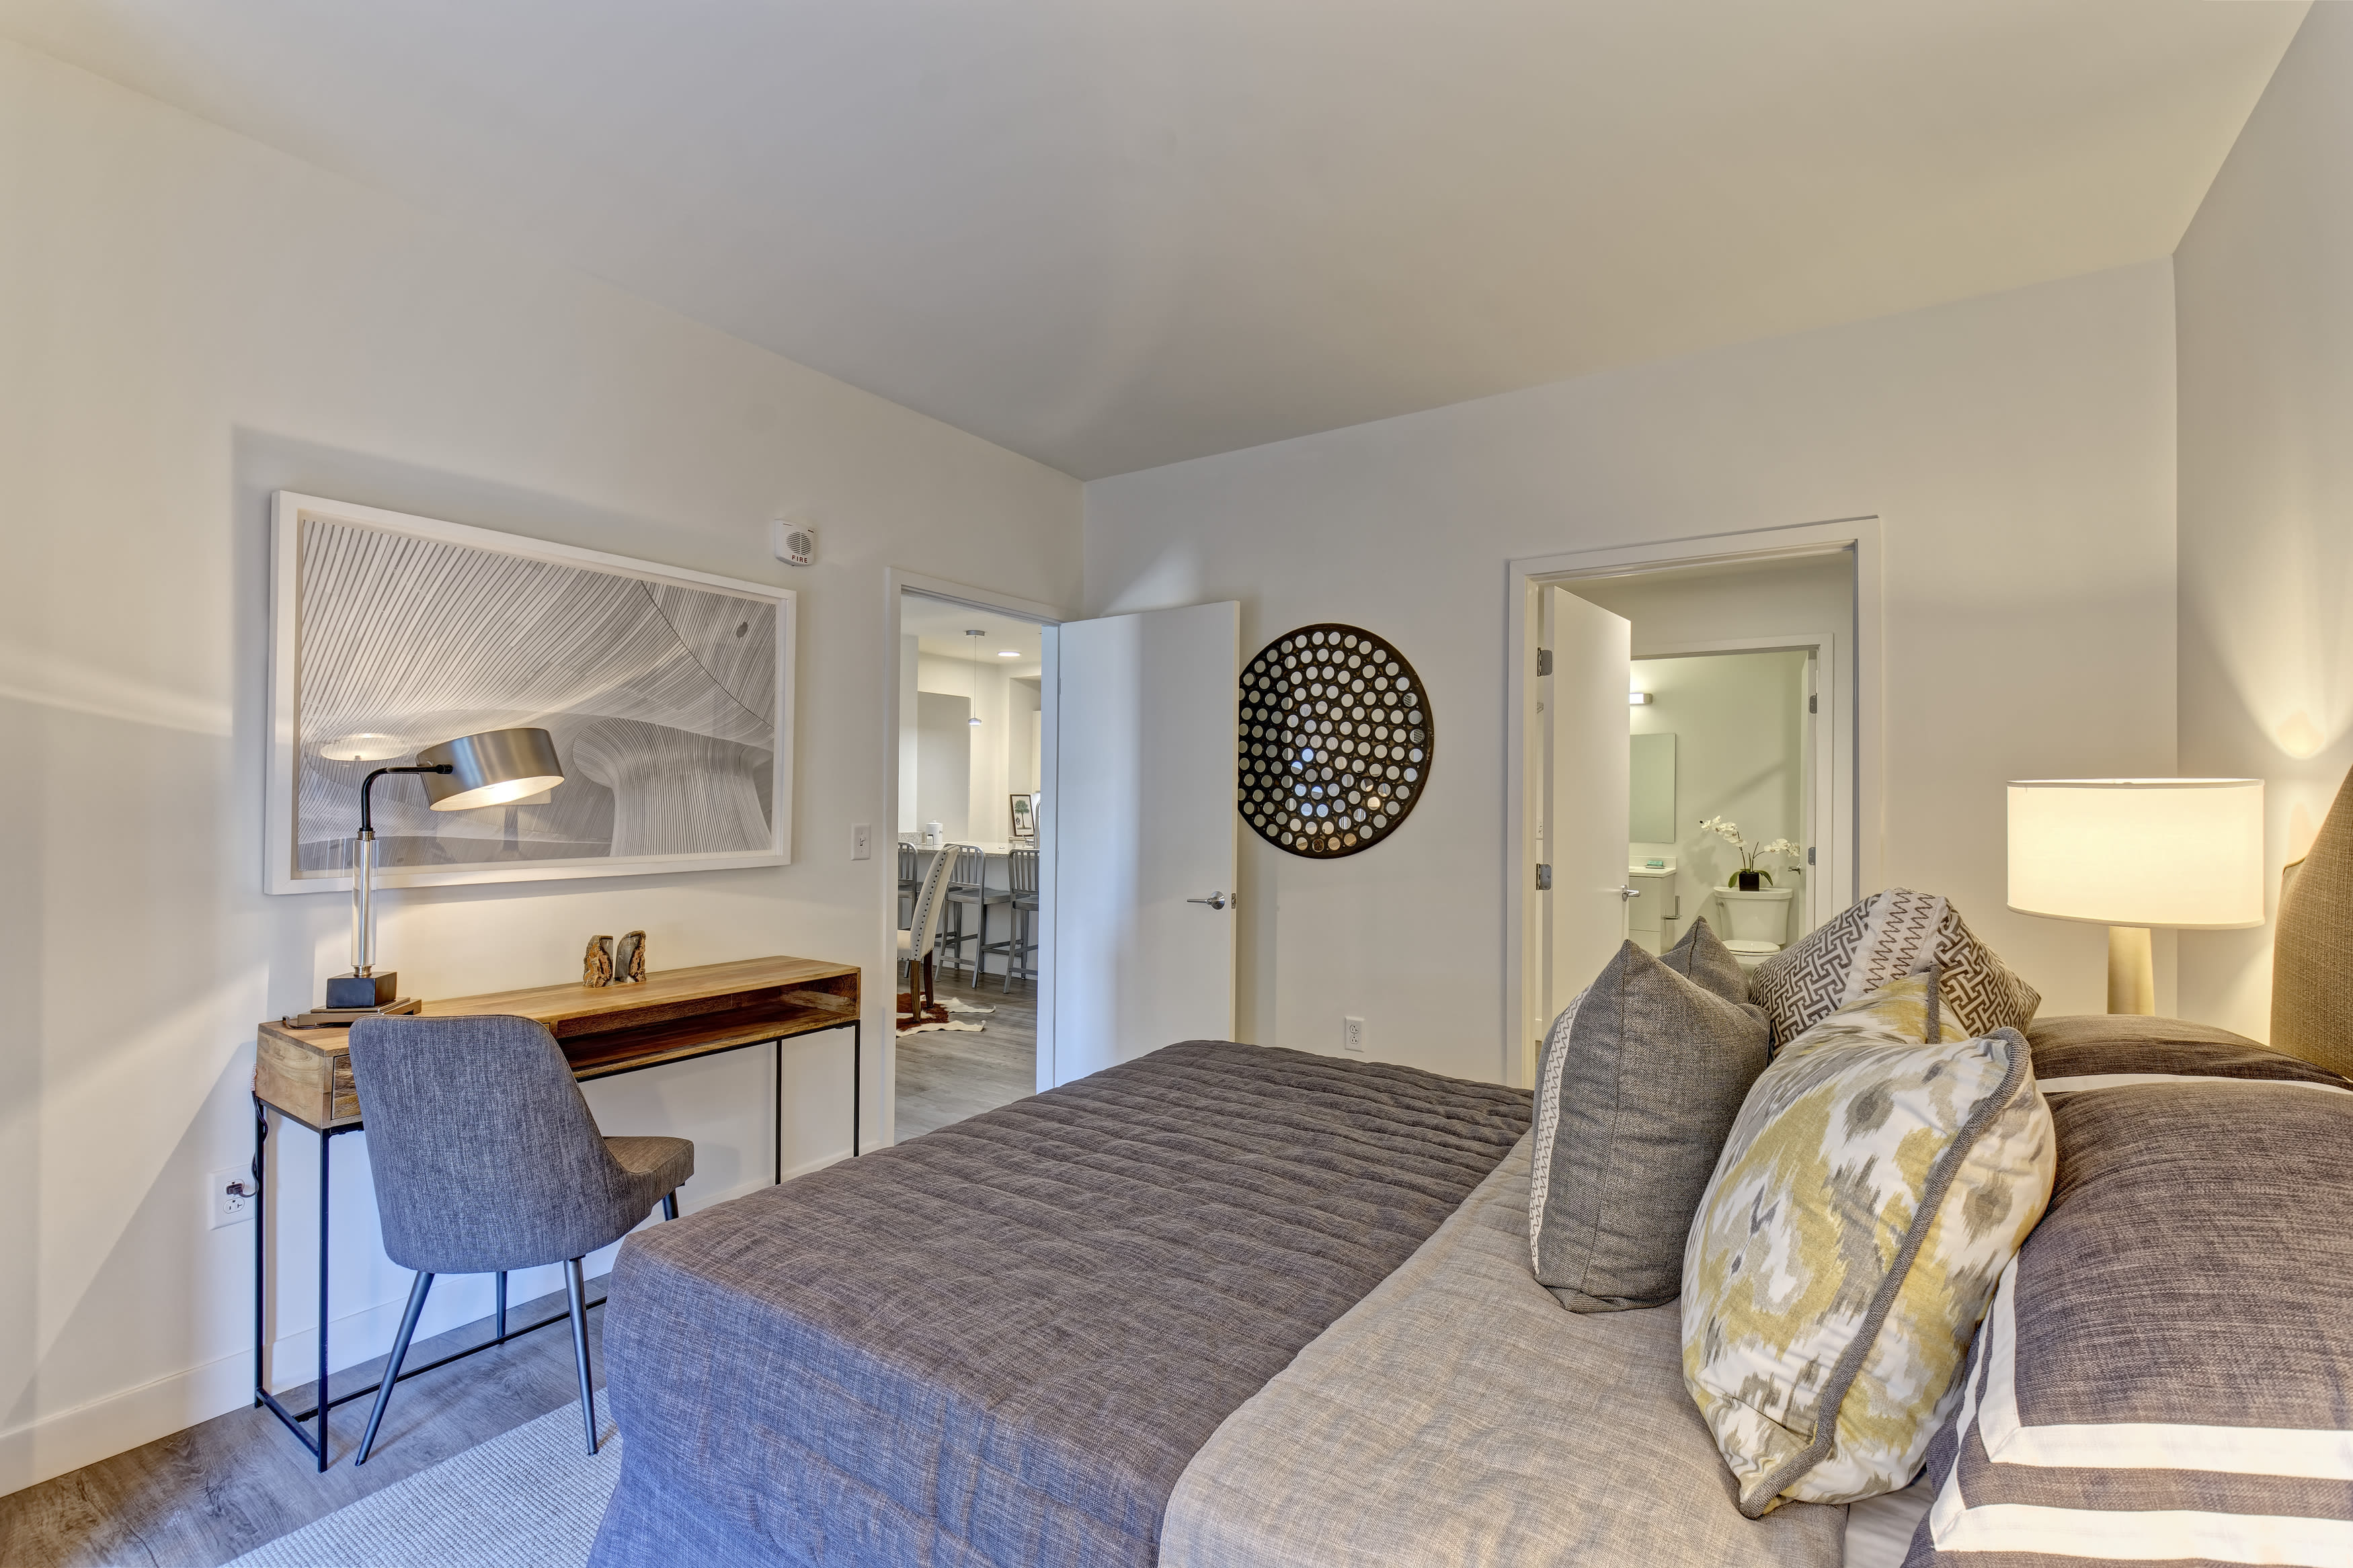 1 bedroom apartments stamford ct  vela on the park